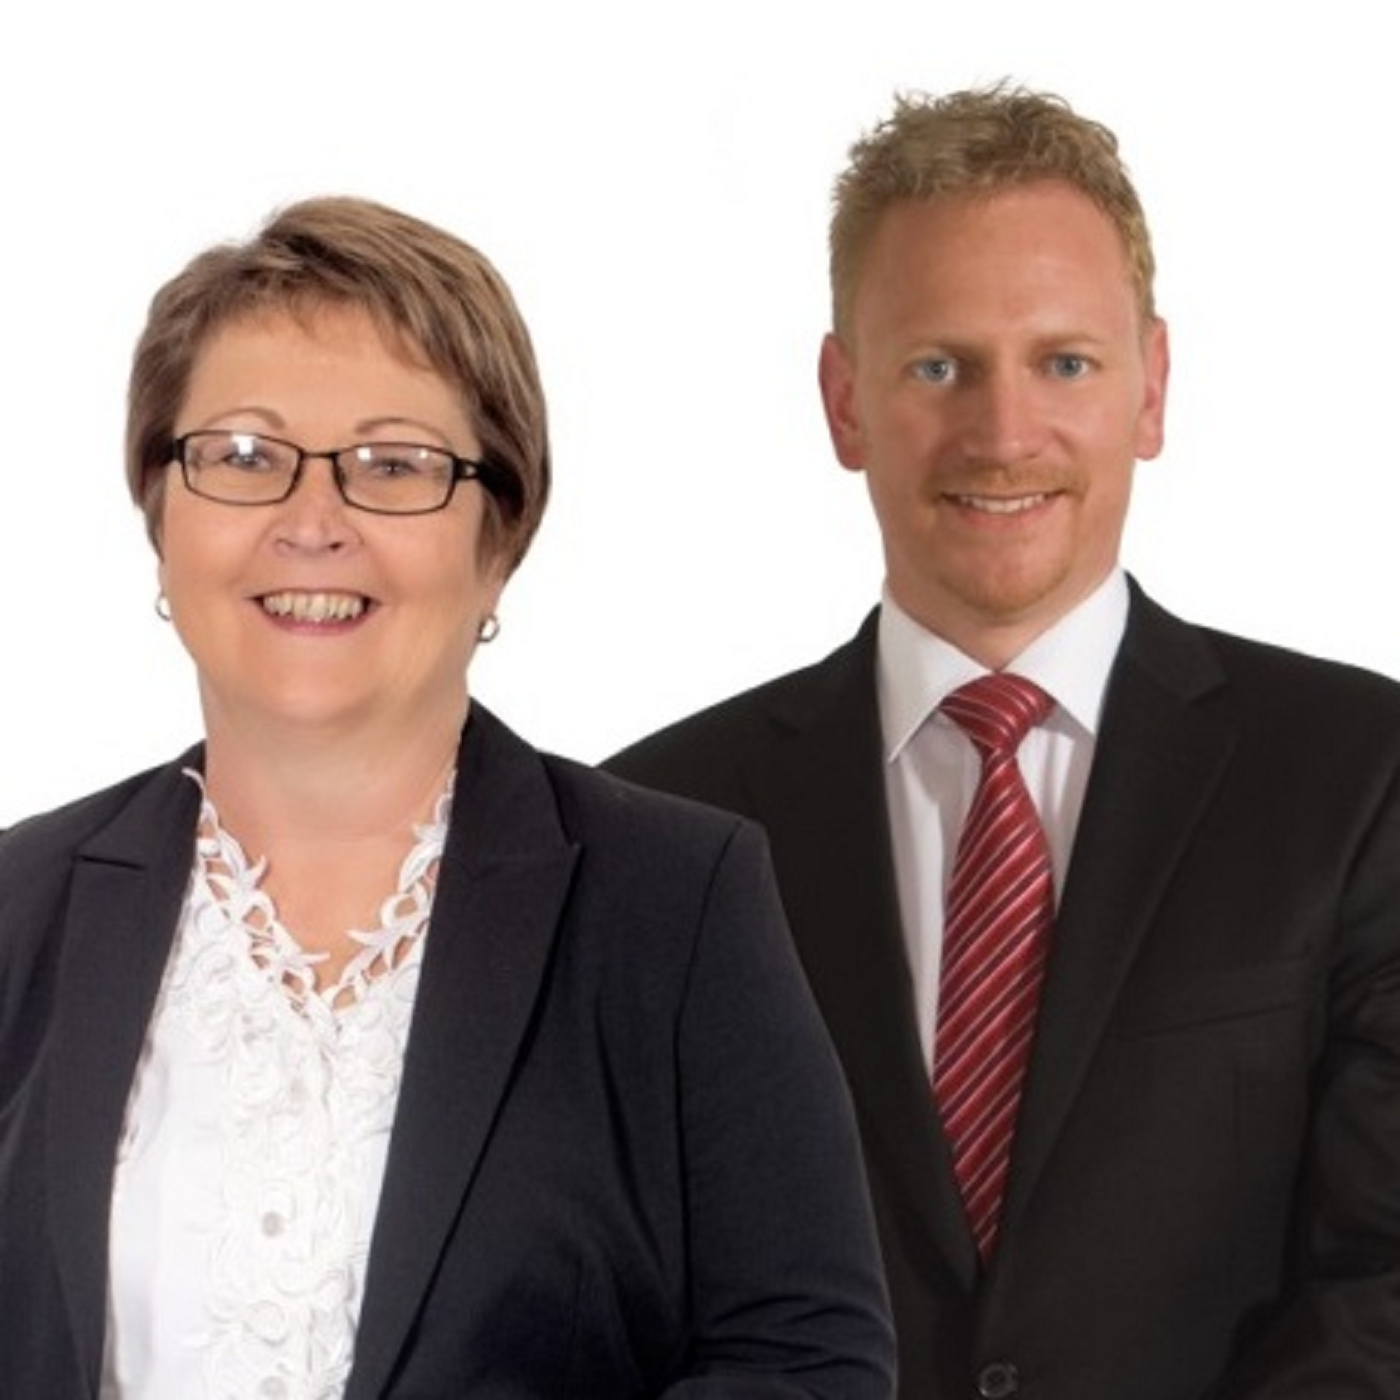 Real Estate with James and Sue-23-04-2019 Cancer Society Auction - Changing Markets - Top Tips for selling your house